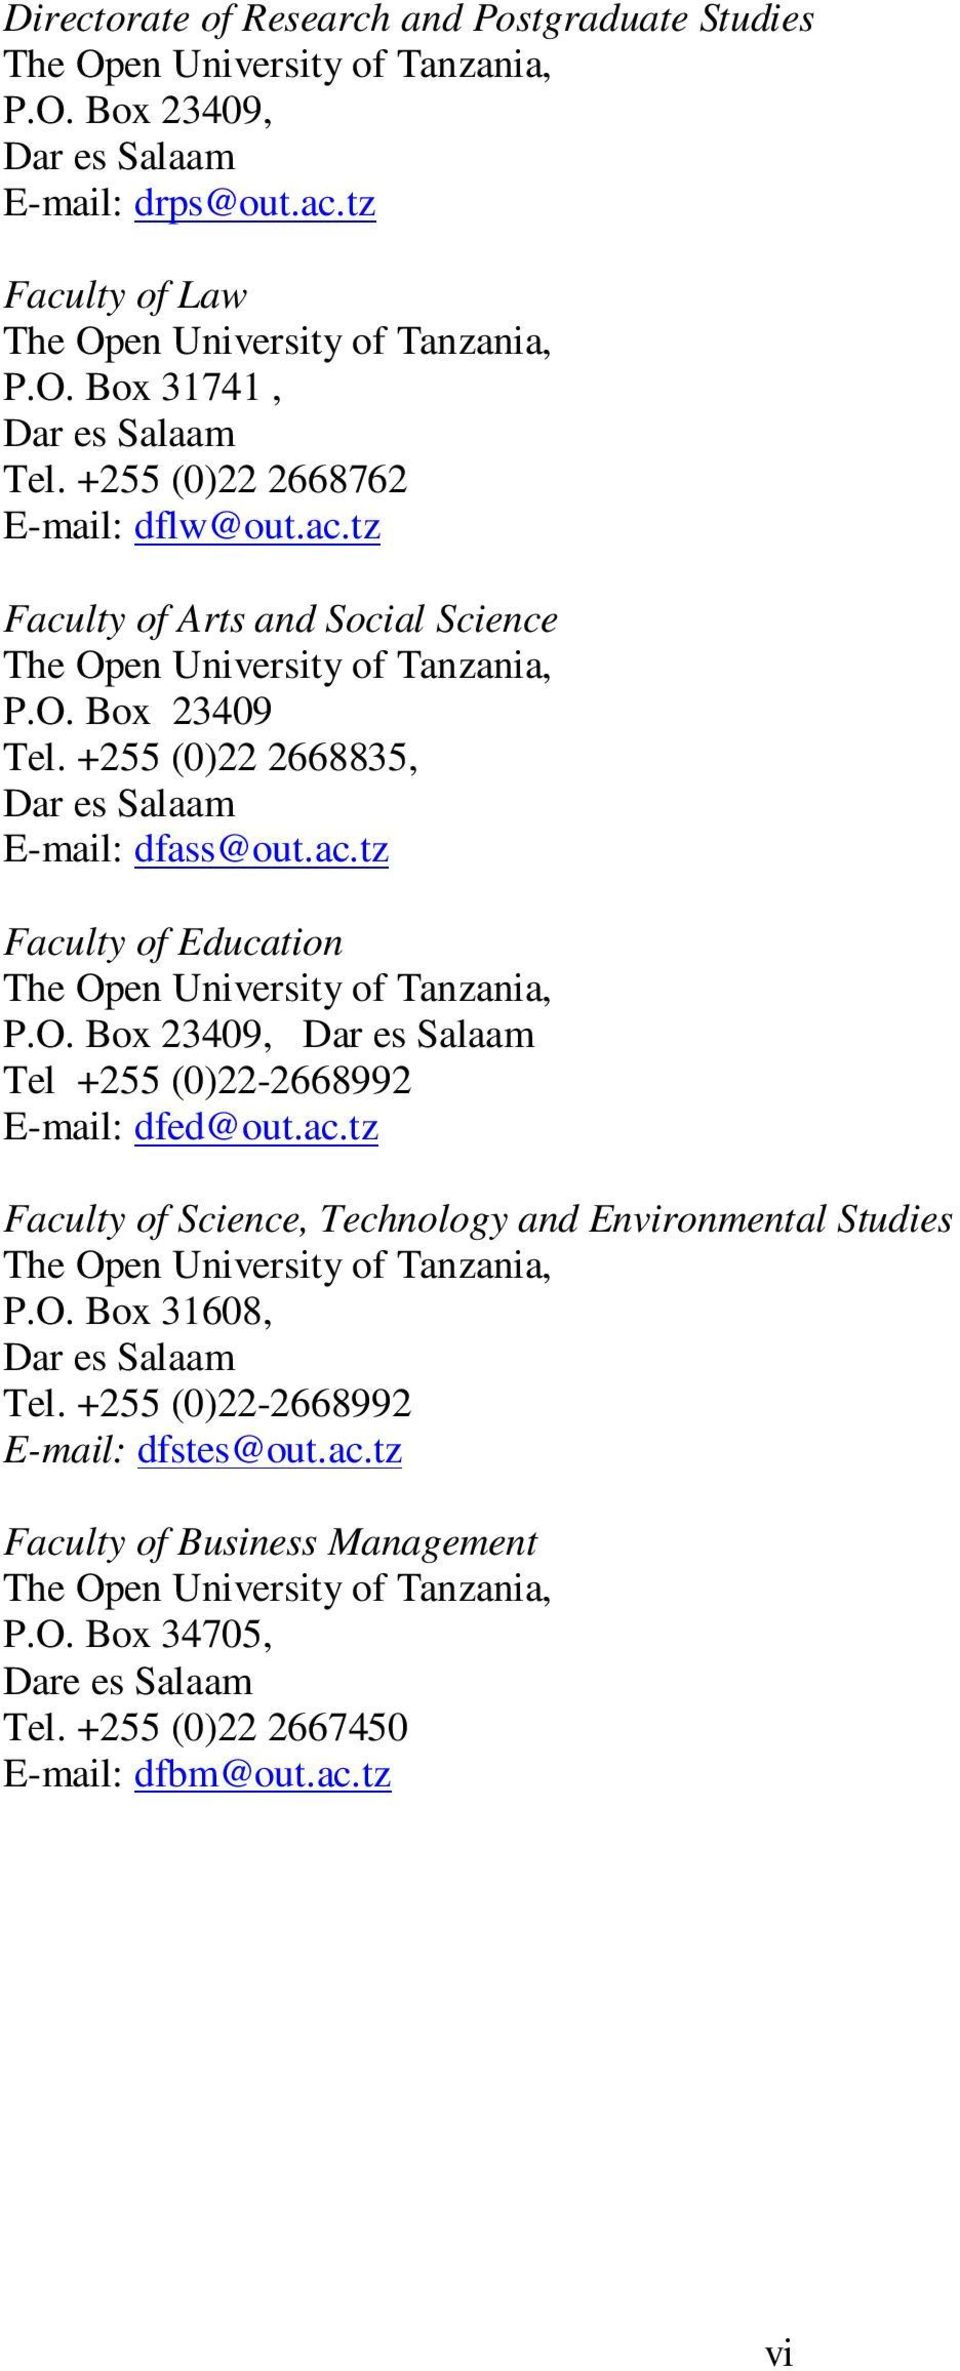 O. Box 23409, Dar es Salaam Tel +255 (0)22-2668992 E-mail: dfed@out.ac.tz Faculty of Science, Technology and Environmental Studies The Open University of Tanzania, P.O. Box 31608, Dar es Salaam Tel.